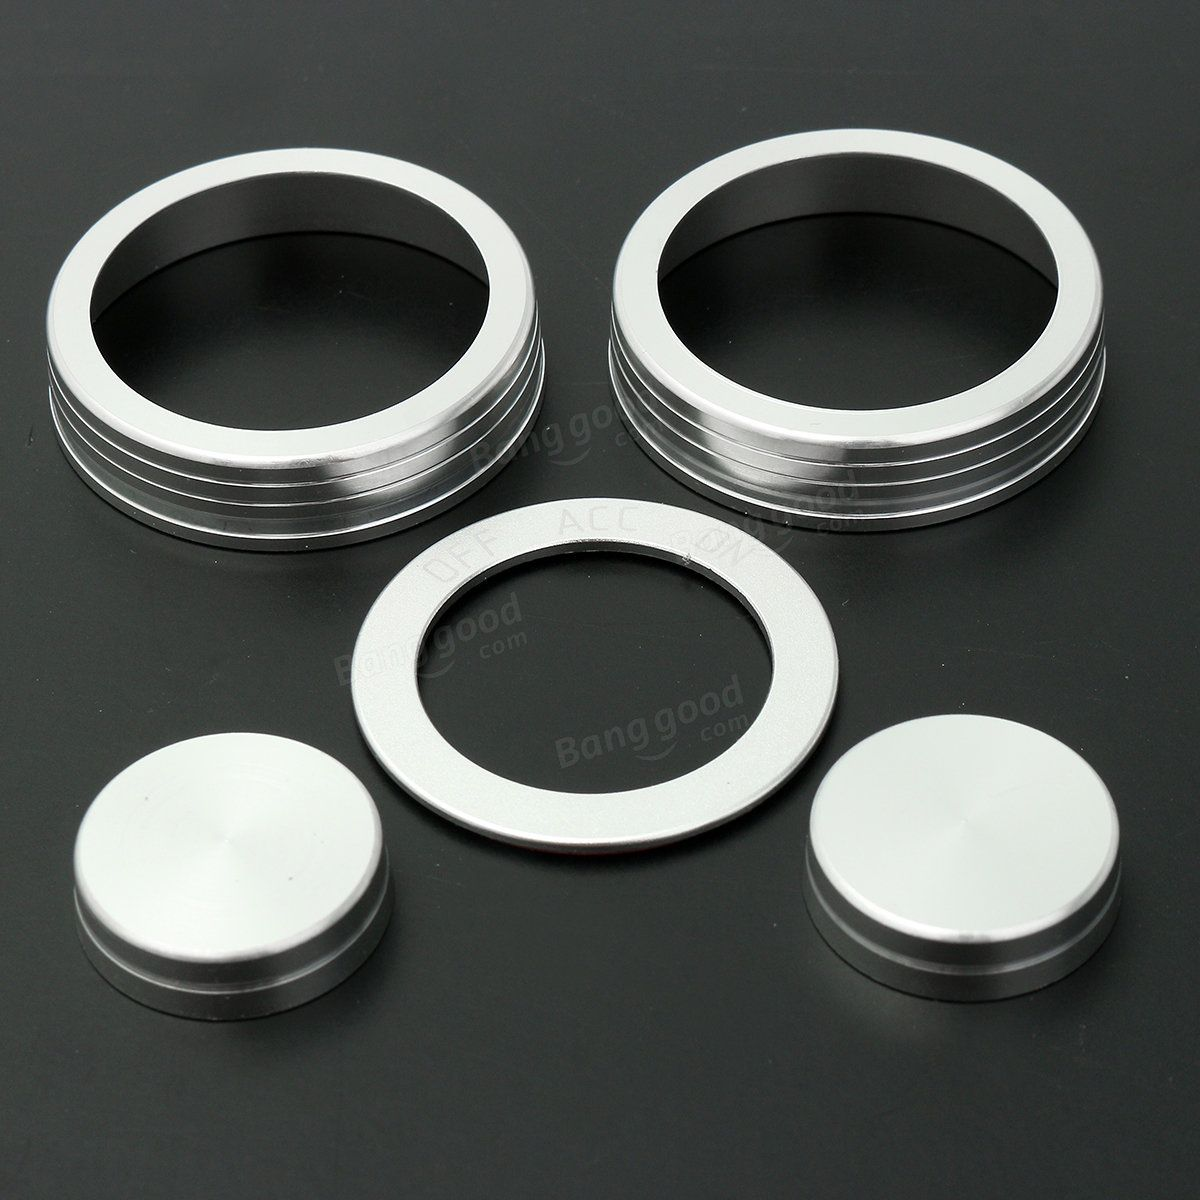 [US9.99] 5 Pcs Car Air Condition Button Ignition Ring